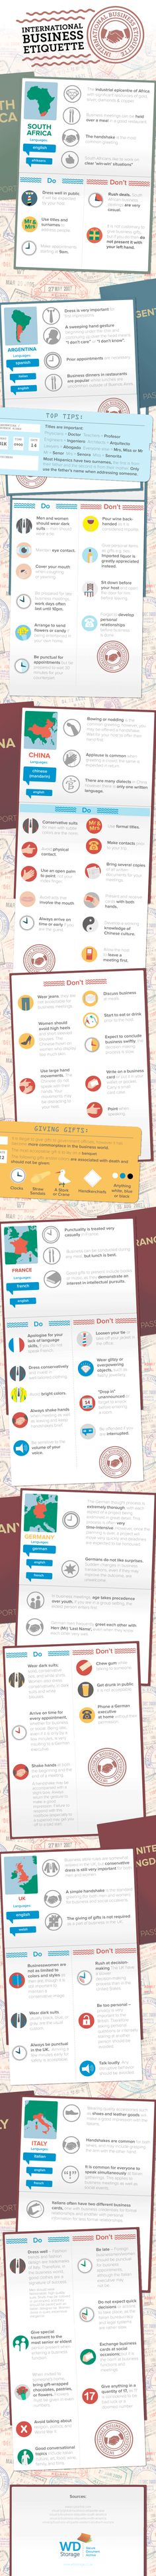 Dos and Don'ts for International Business Travel (Infographic) | Inc.com